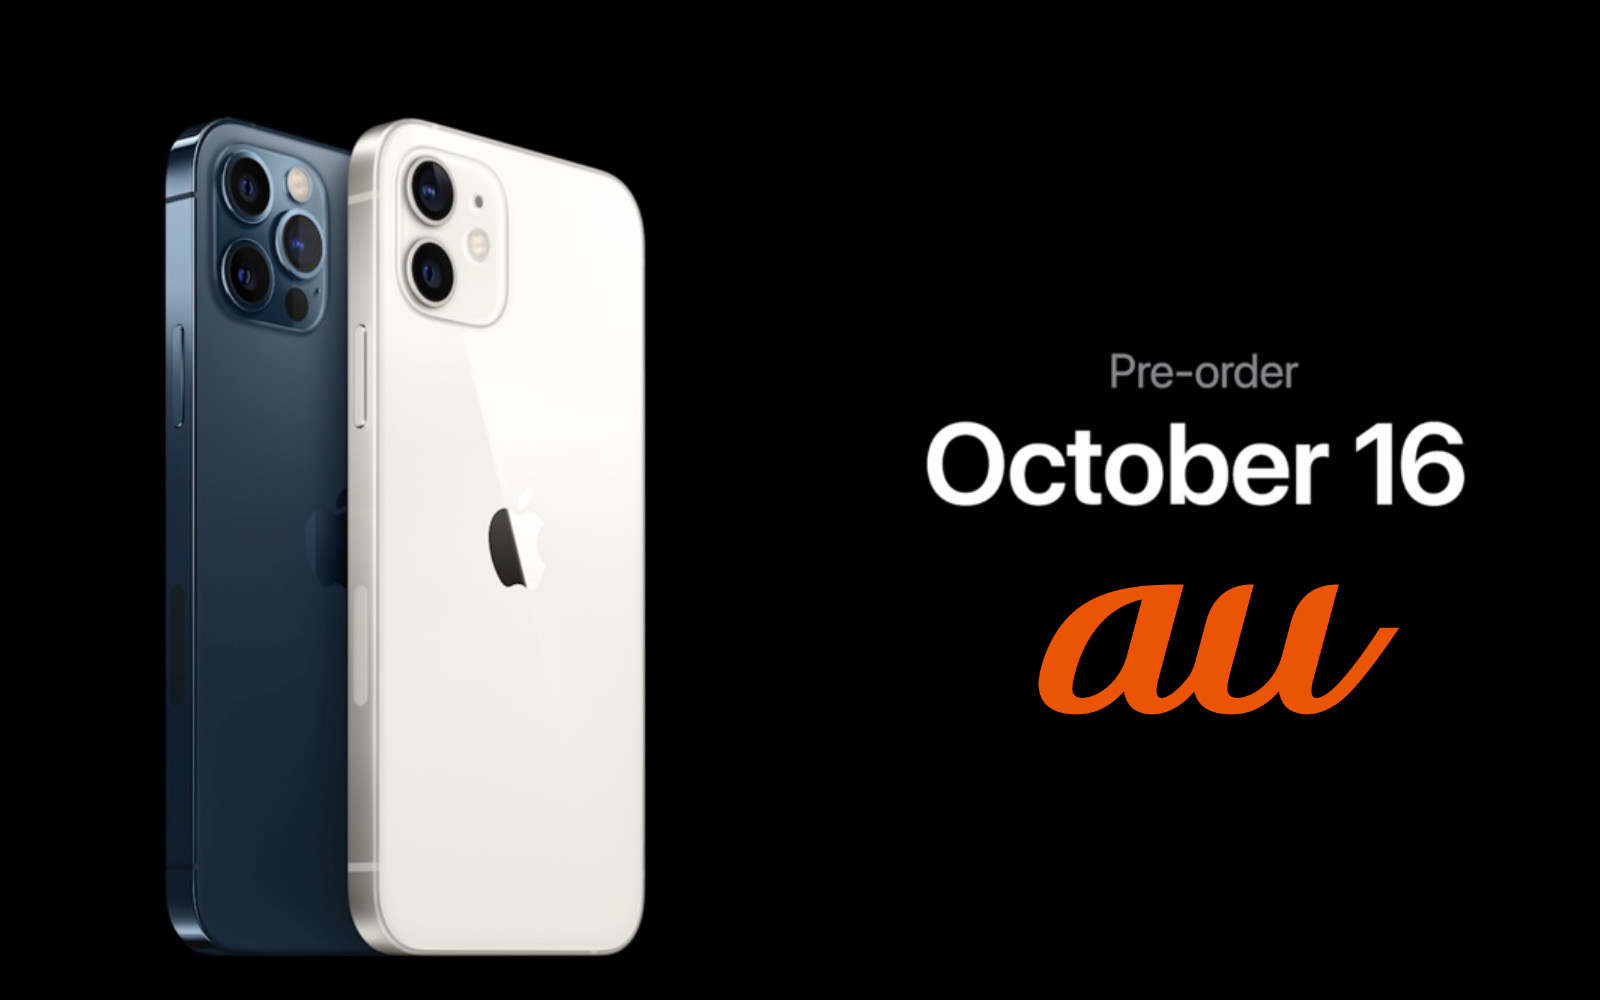 Iphone12 and 12pro preorder